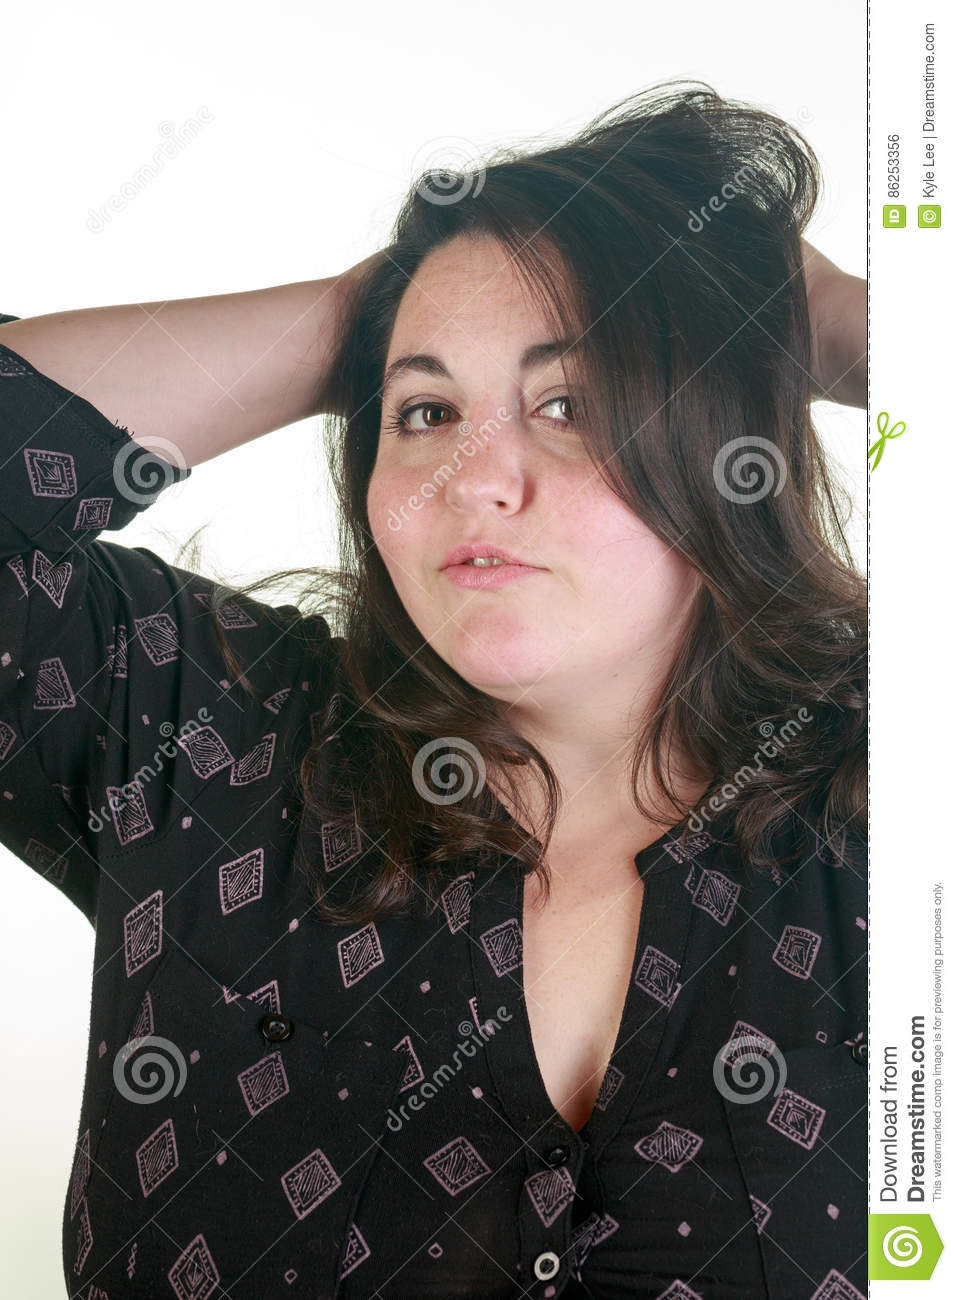 plus size woman posing in the studio stock photo - image of light